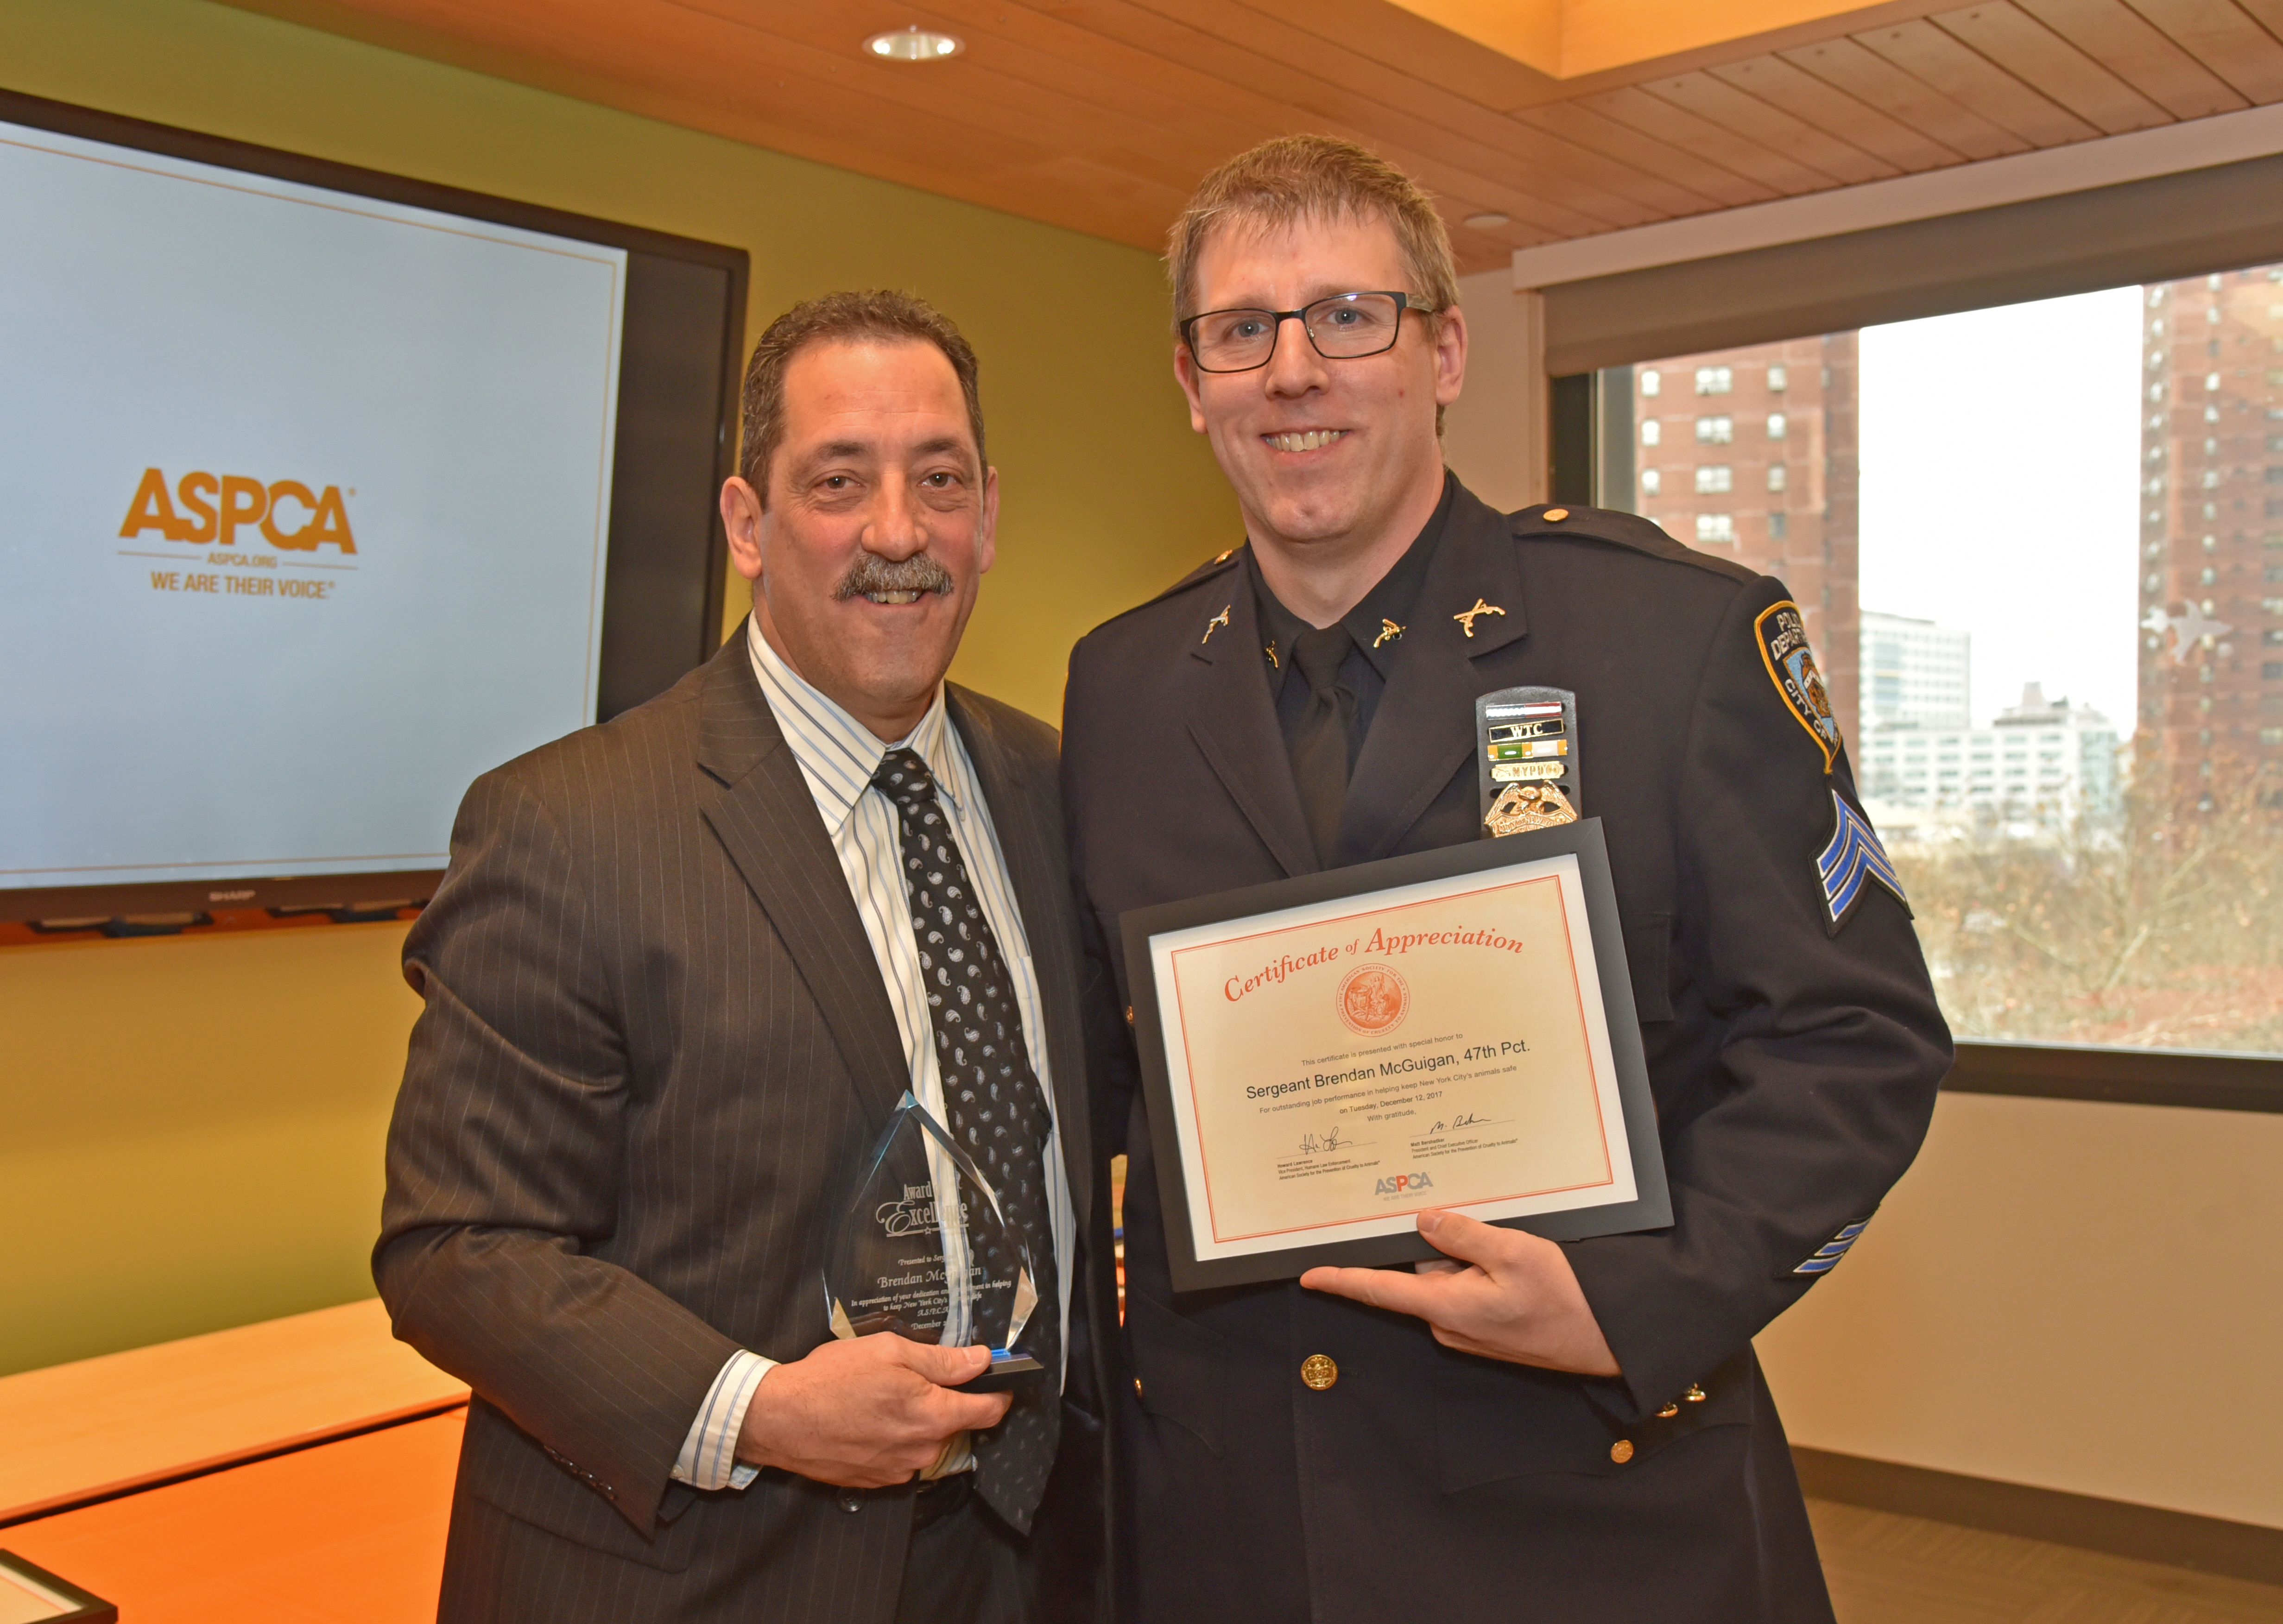 ASPCA Honors NYPD Officers & Assistant District Attorney At 3<sup>rd</sup> Annual Appreciation Luncheon